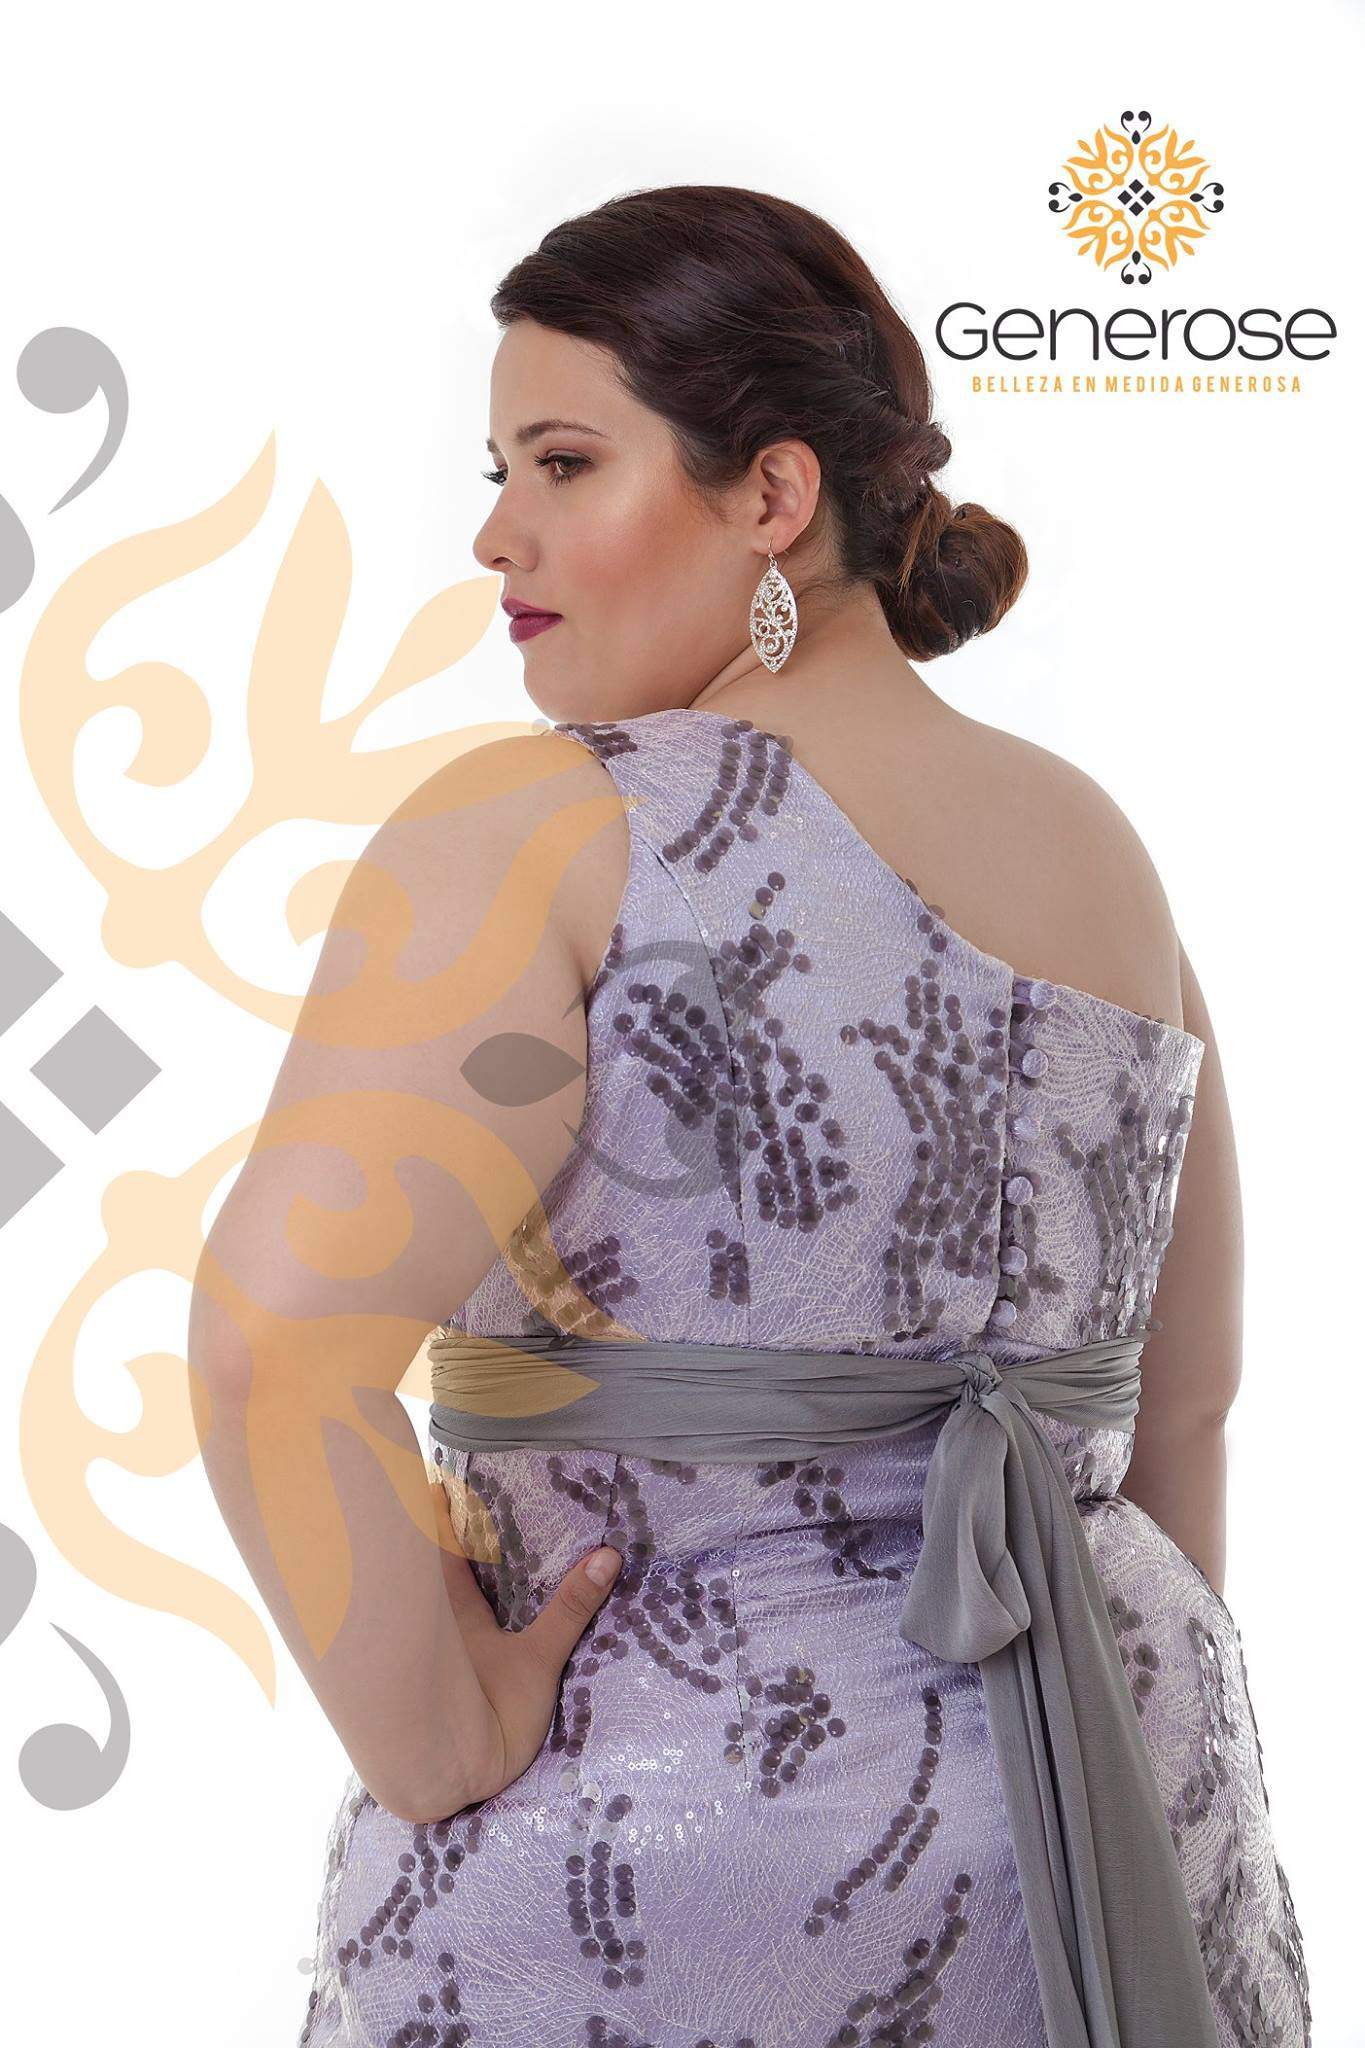 You Oughta Know: Mexican Plus Size Label Generose